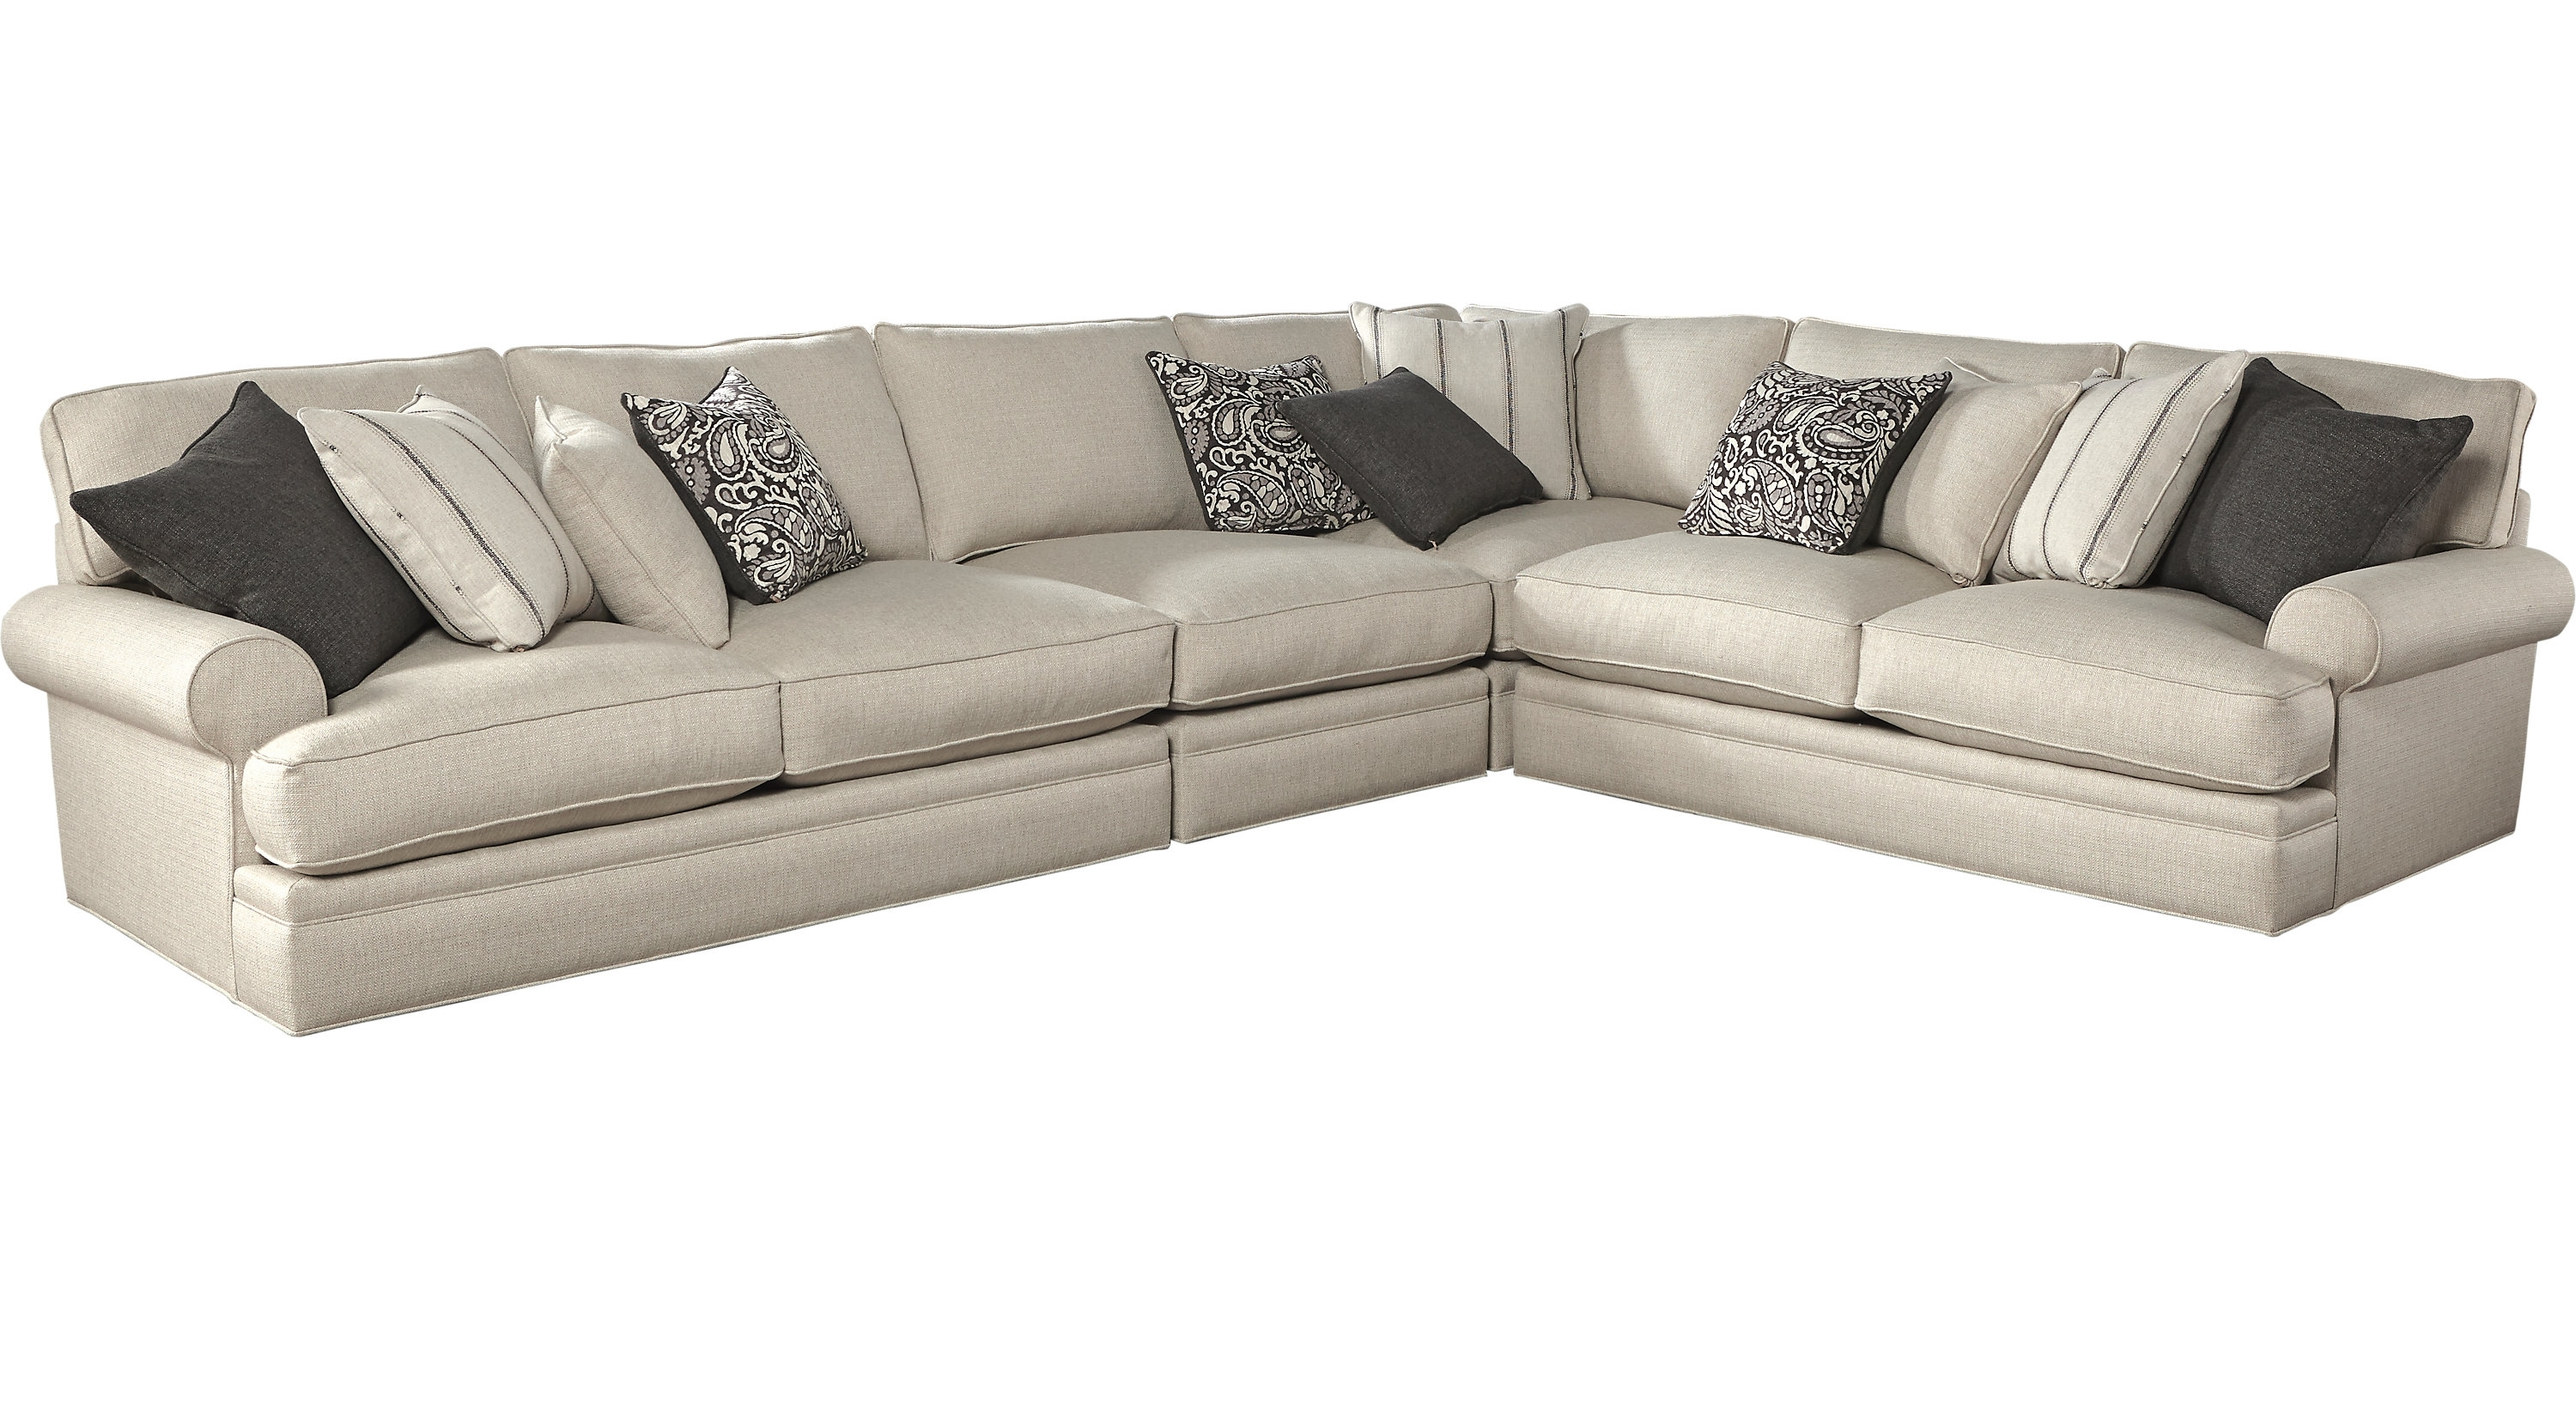 Washable Sofas Regarding Newest Sofas : Dining Chair Slipcovers White Couch Covers Washable Sofa (View 17 of 20)